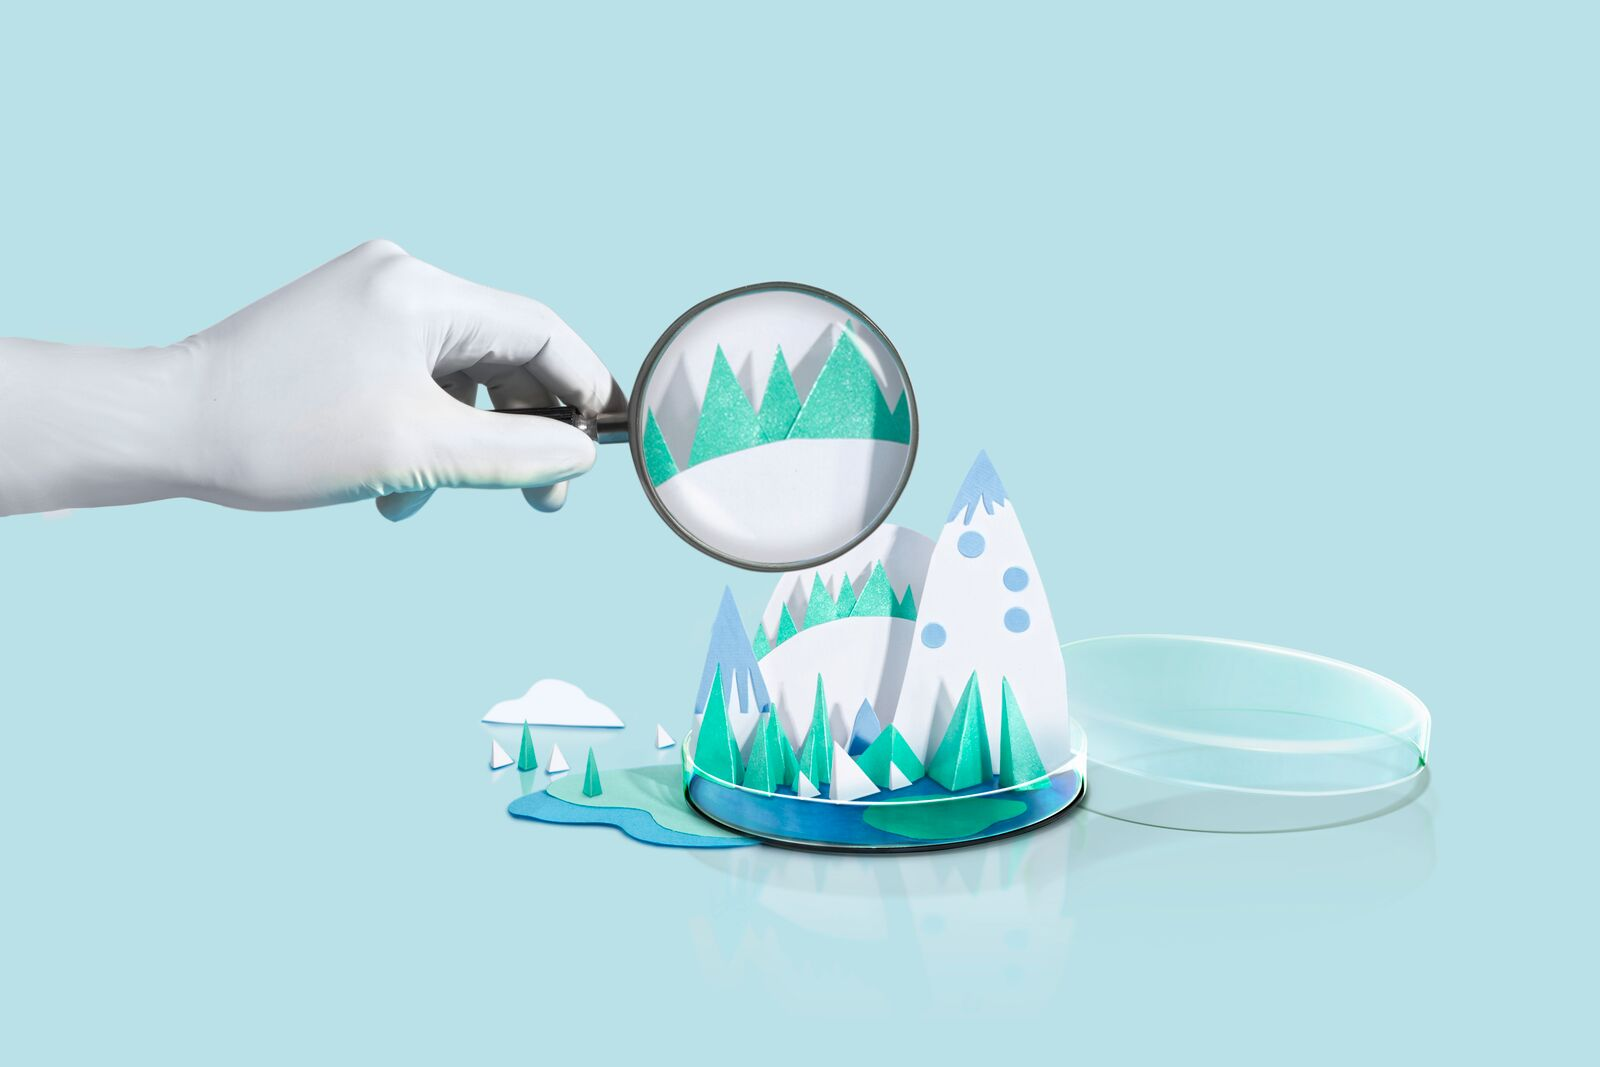 Magnified Snowy Mountain Illustration